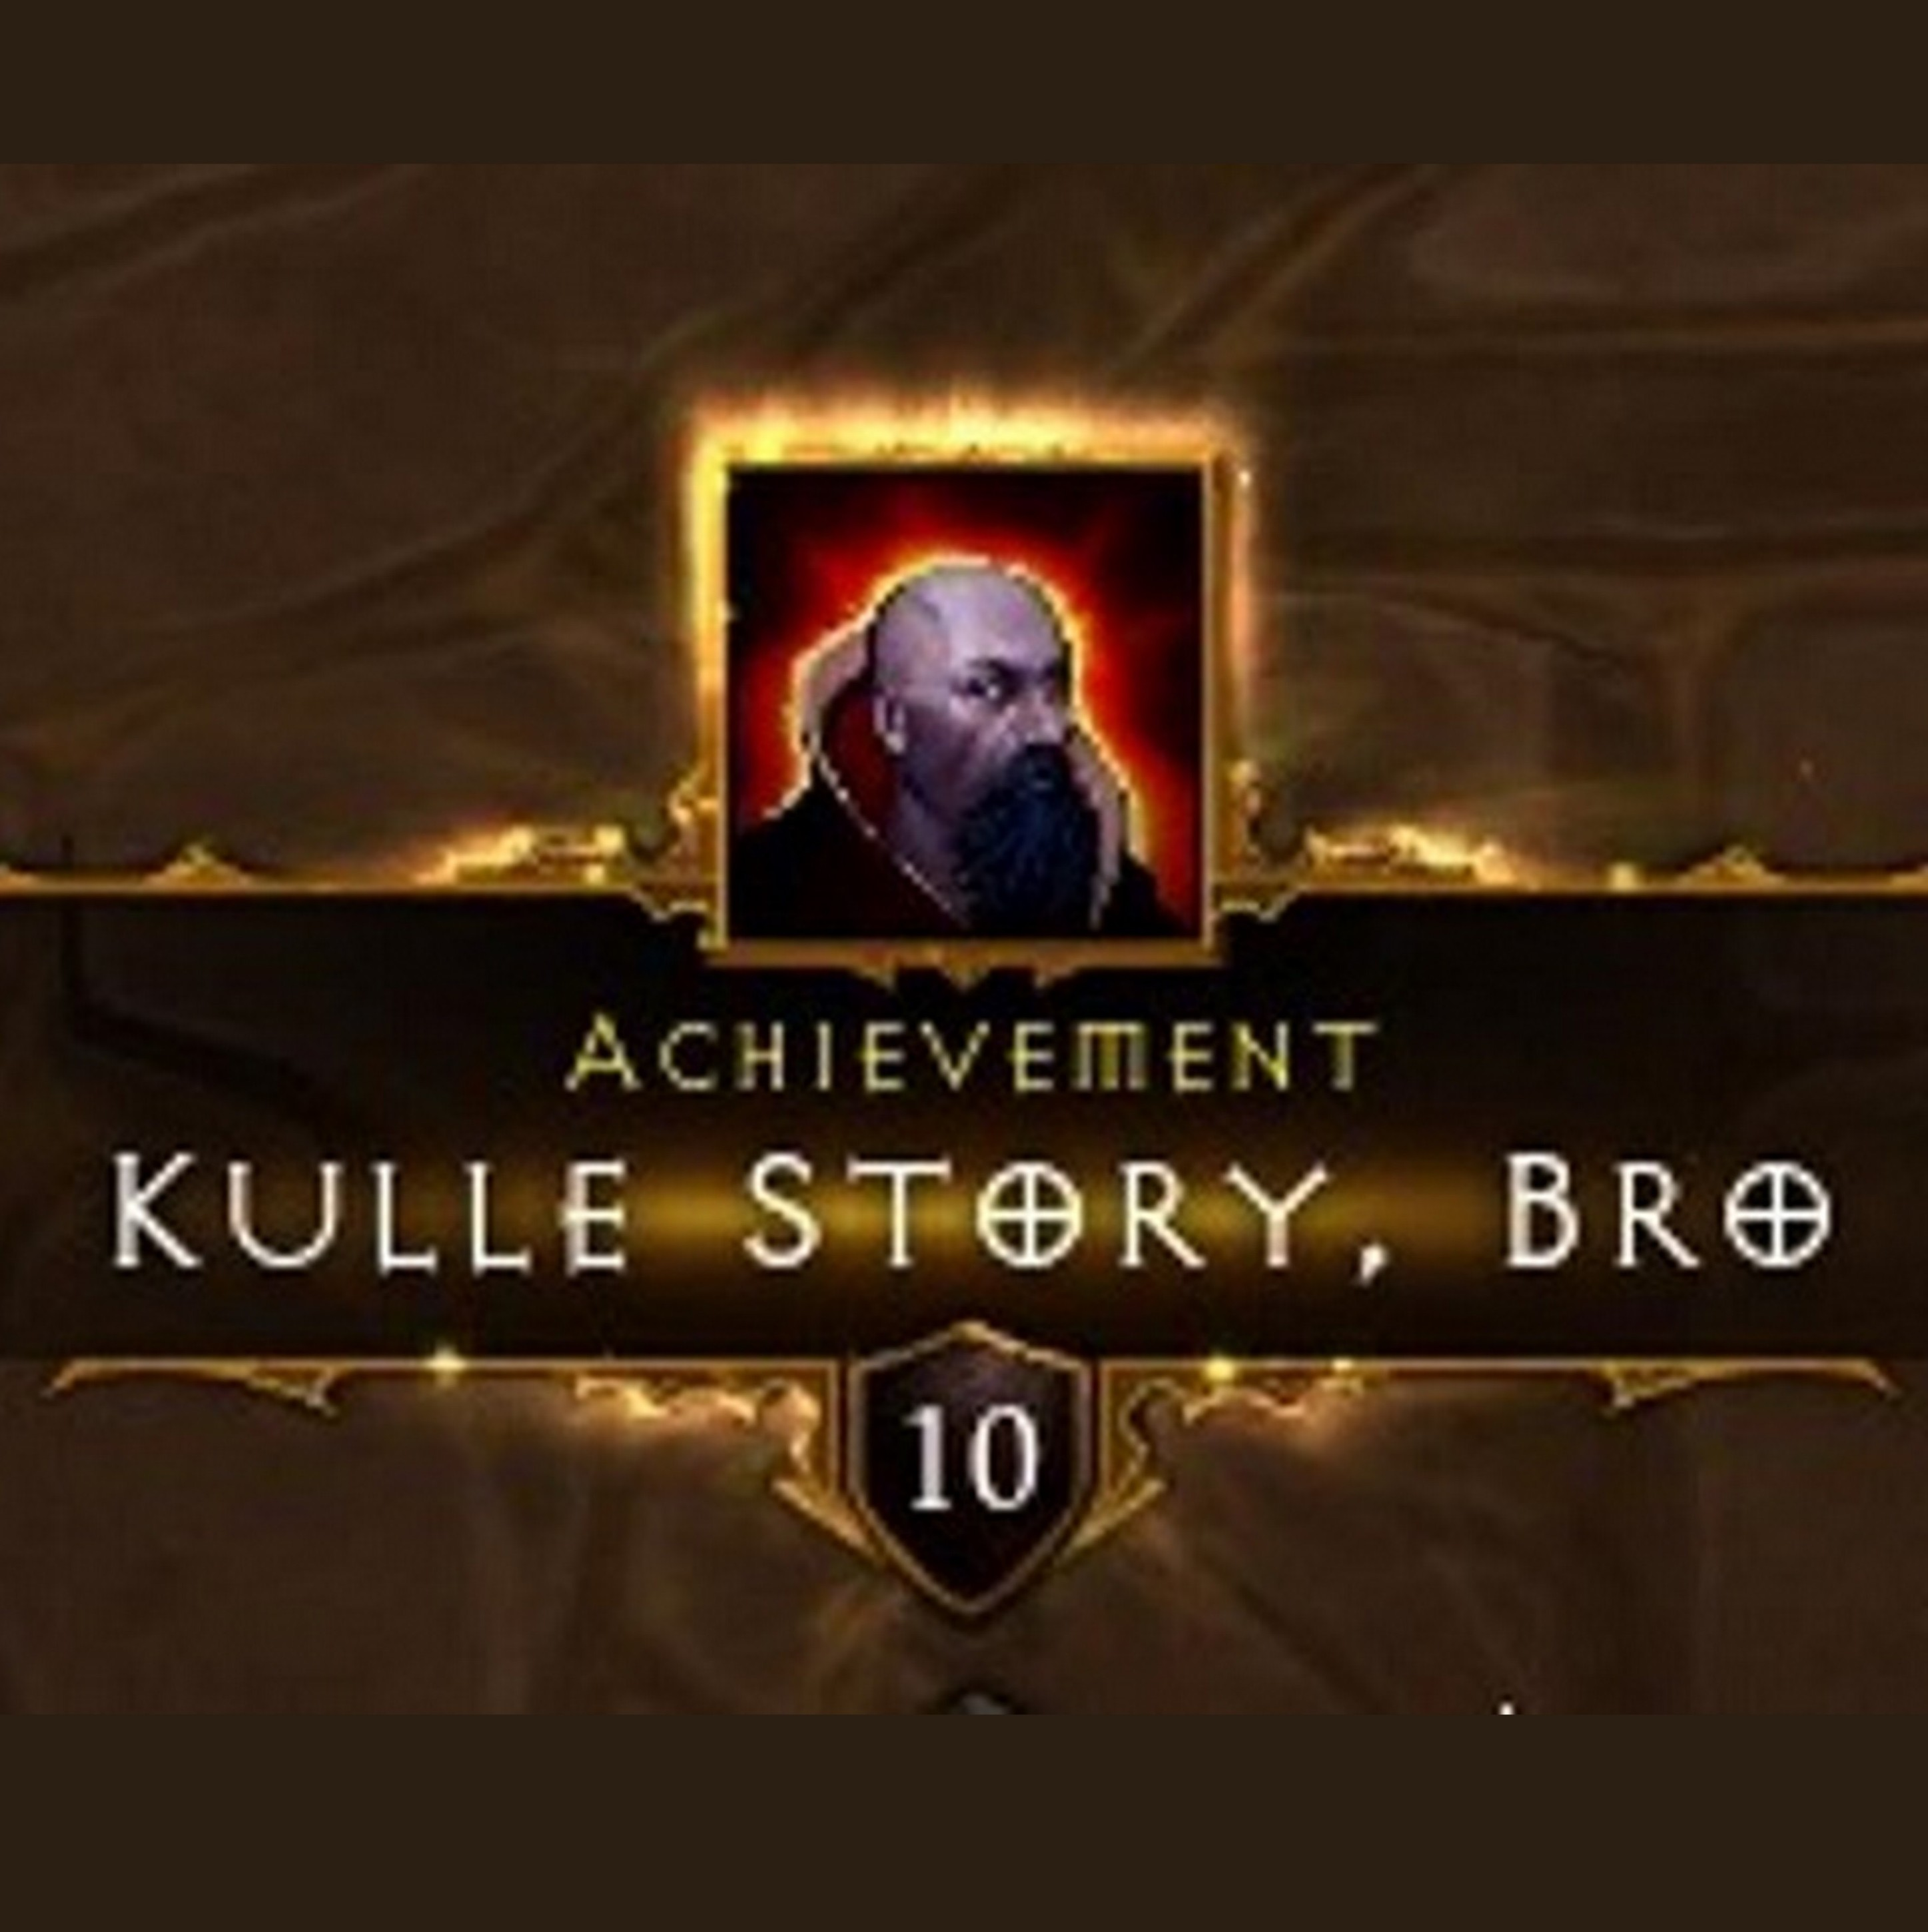 Kulle Story Bro - A Diablo 3 Podcast Episode 24